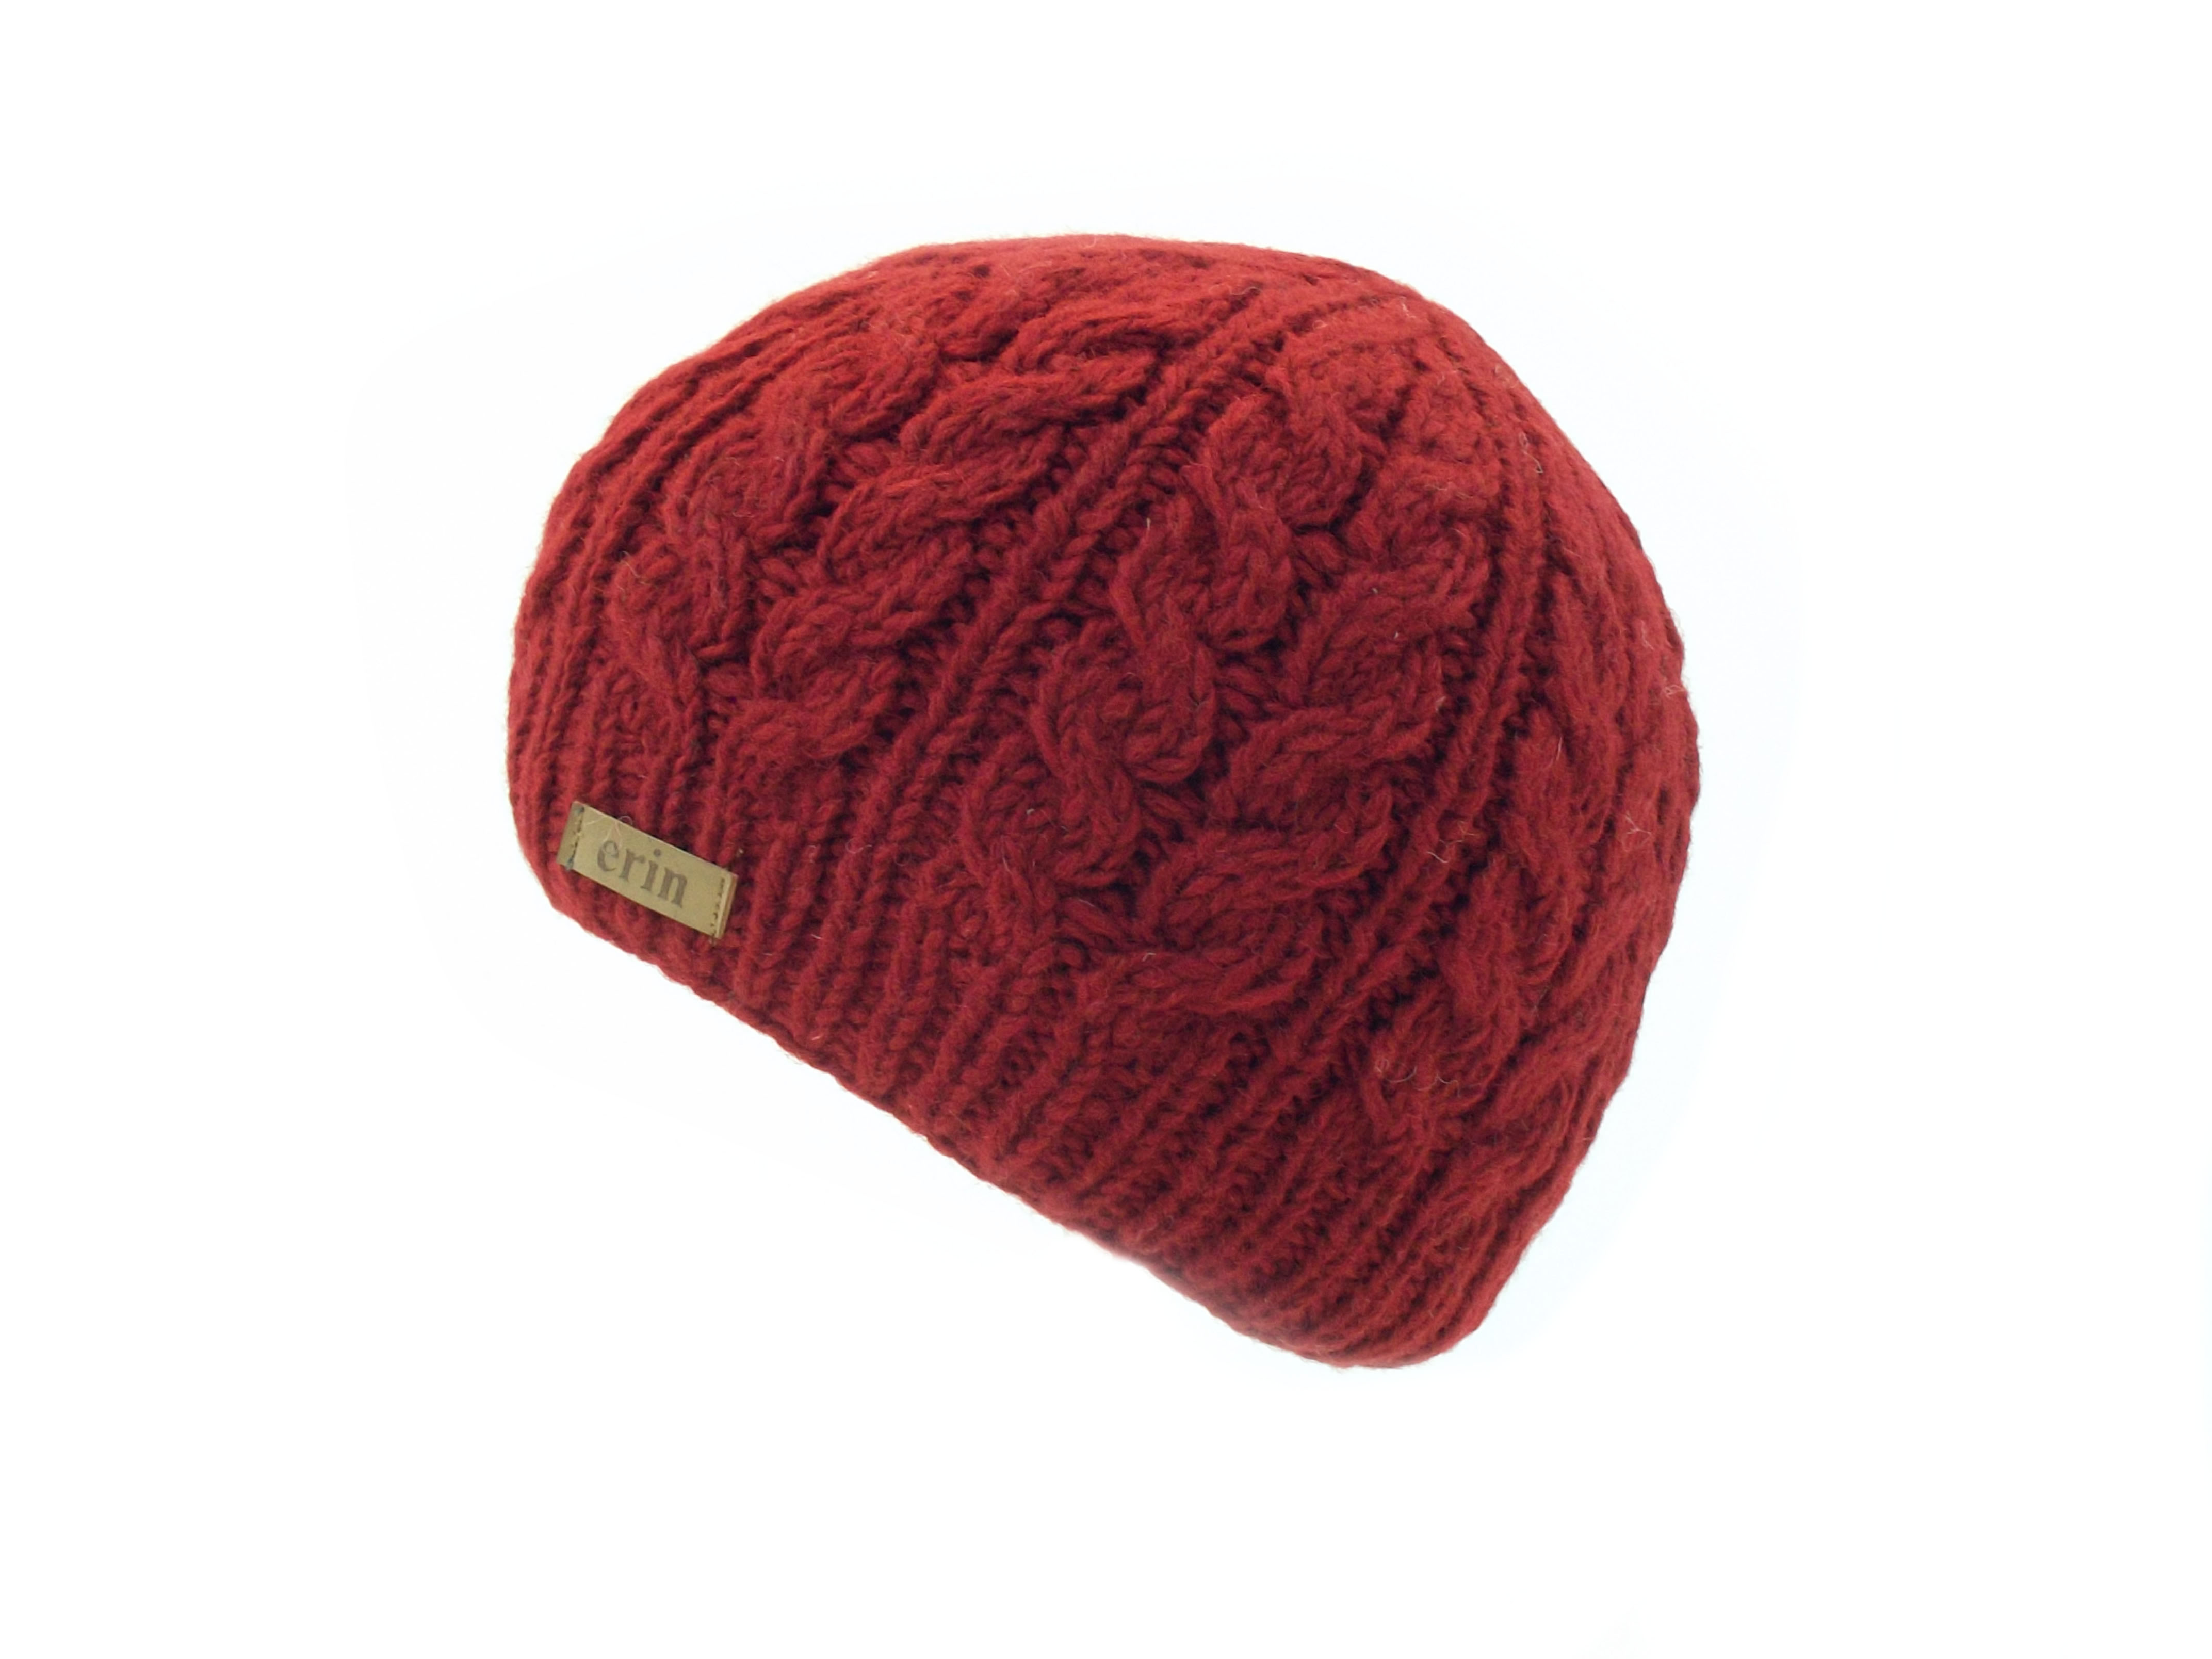 Aran Cable Pullon Hat Red 100% Wool